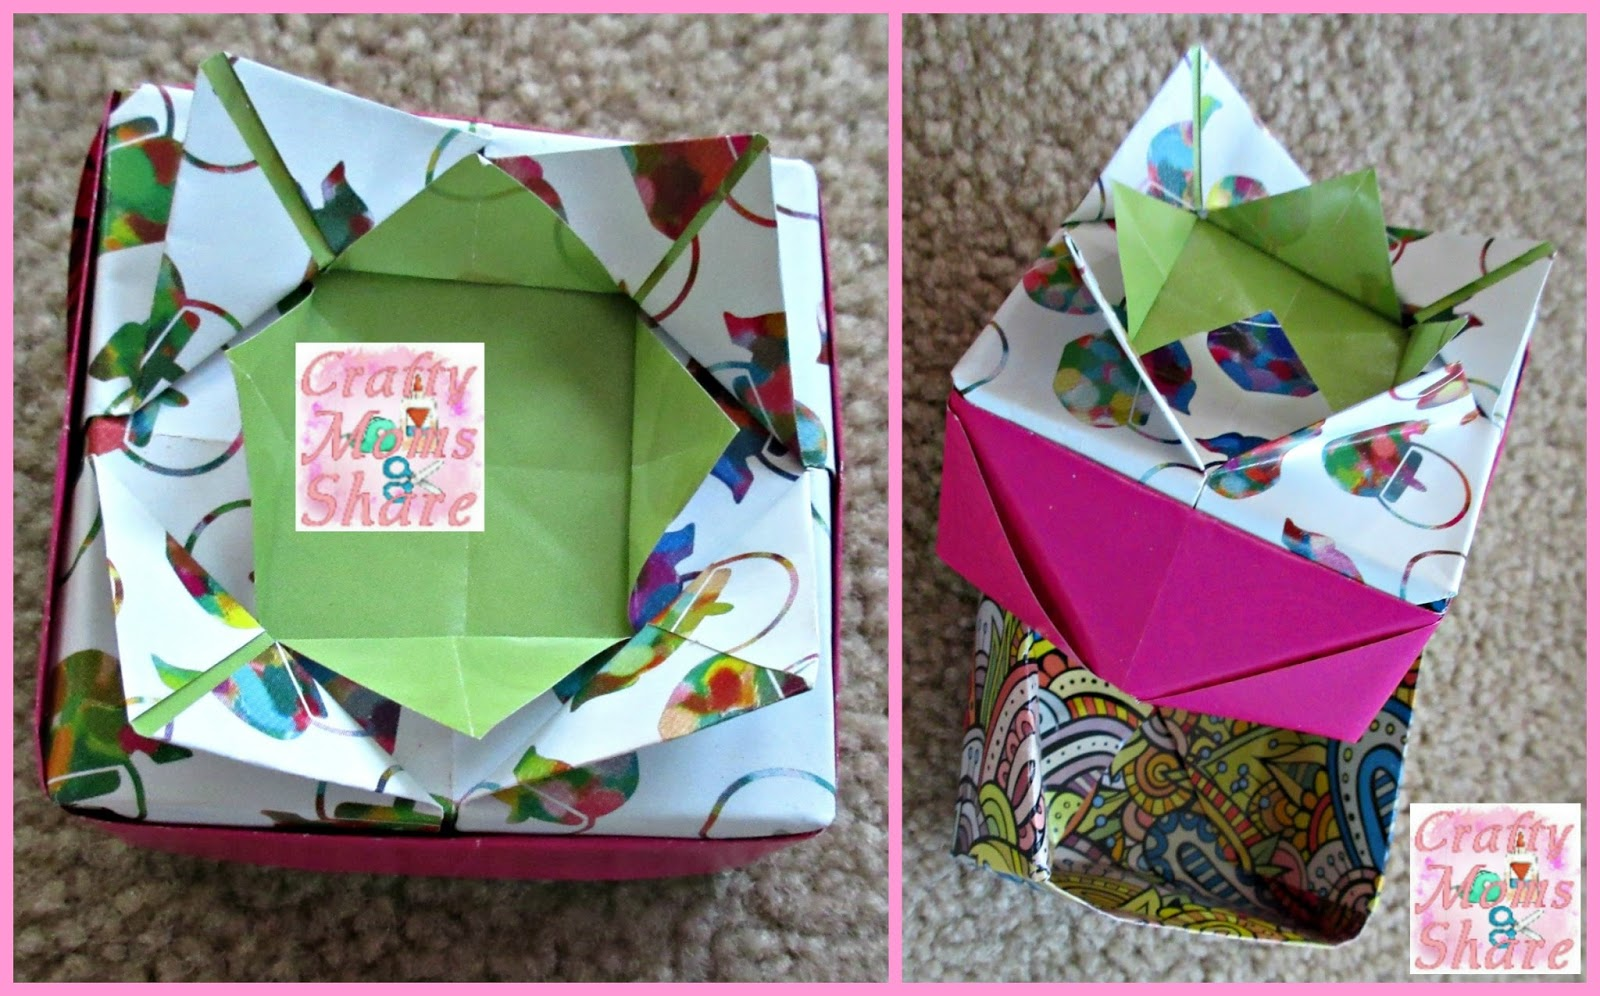 Crafty Moms Share Origami Fun A Weekends Review Link Party Mouse Diagram Embroidery The Instructions In This Kit Are Relatively Easy To Follow Beginning Of Book There Couple Practice Projects Understand